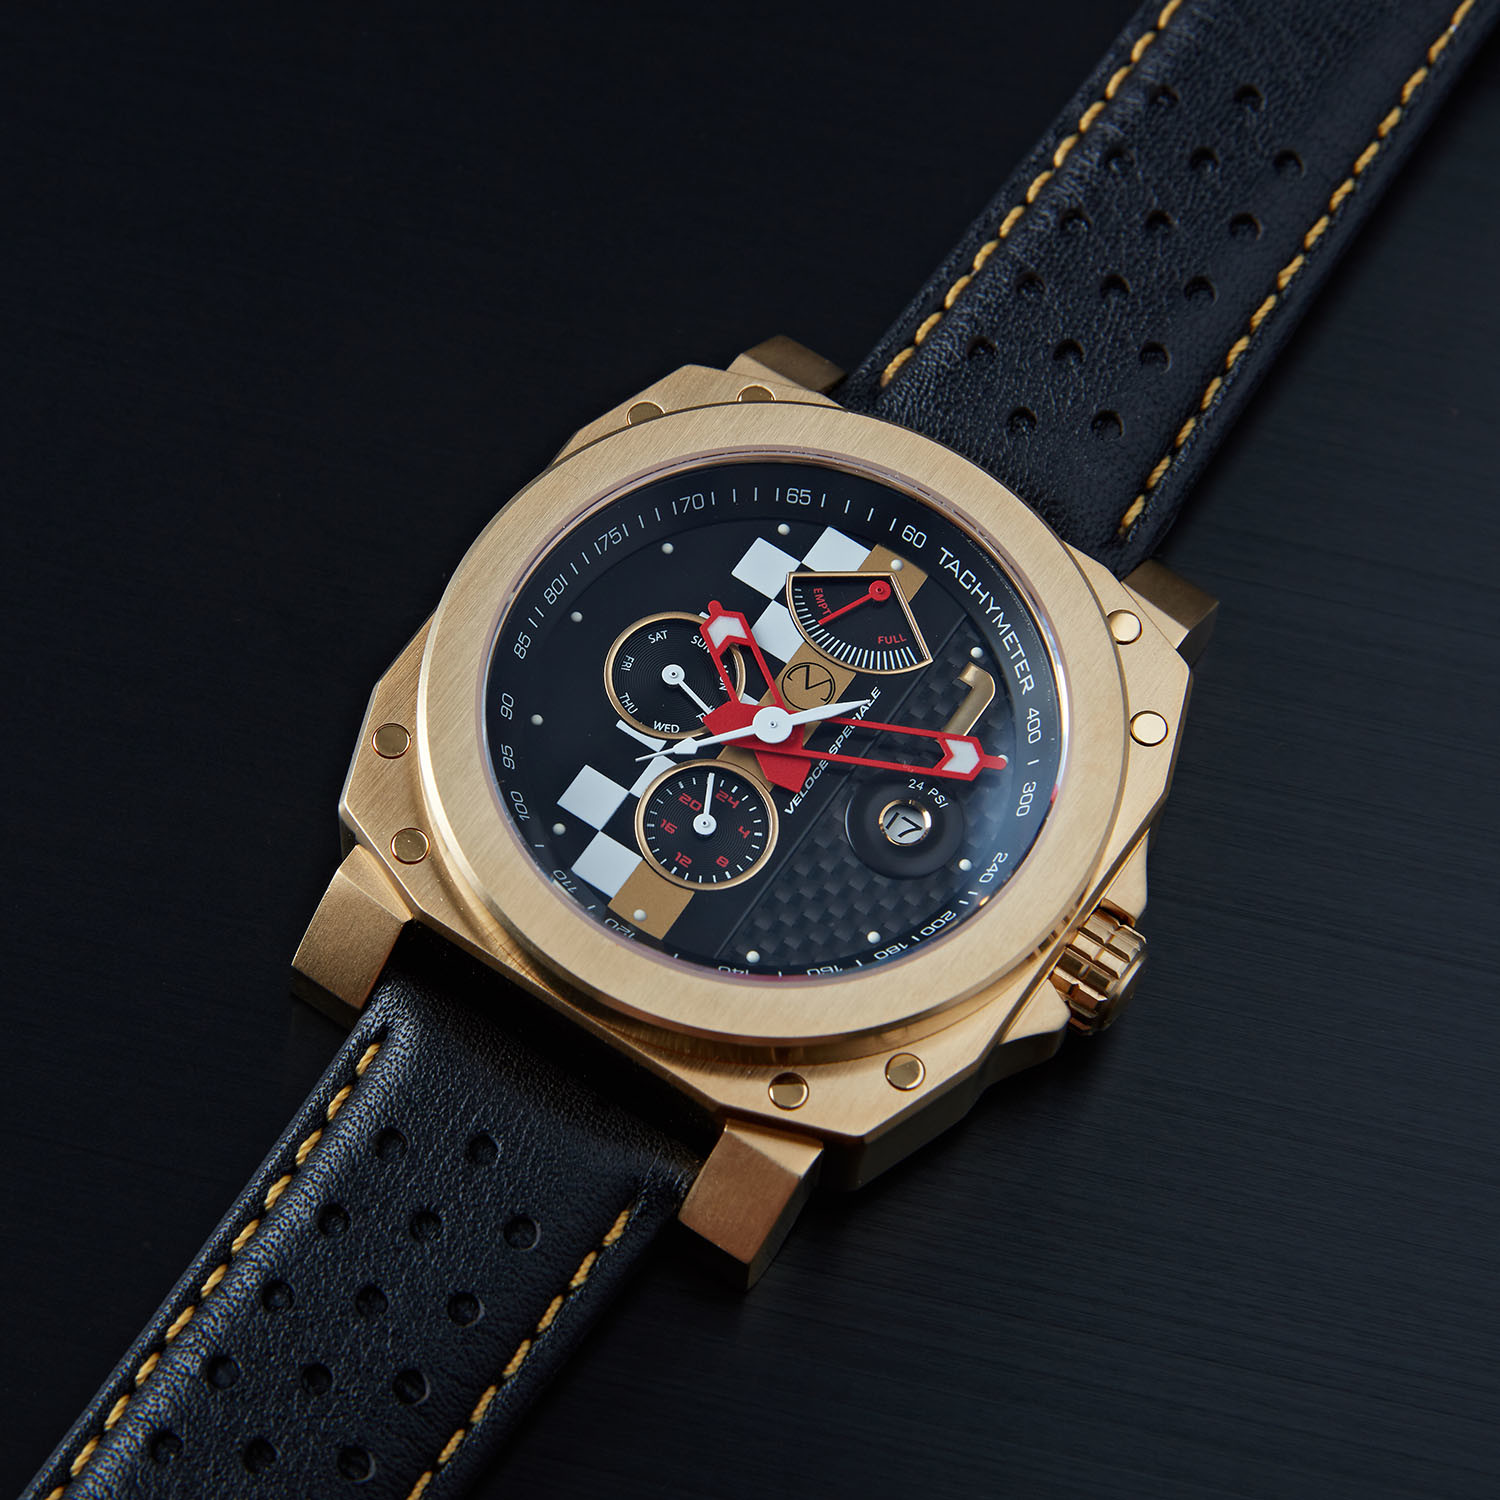 veloce speciale racing watch from morpheus